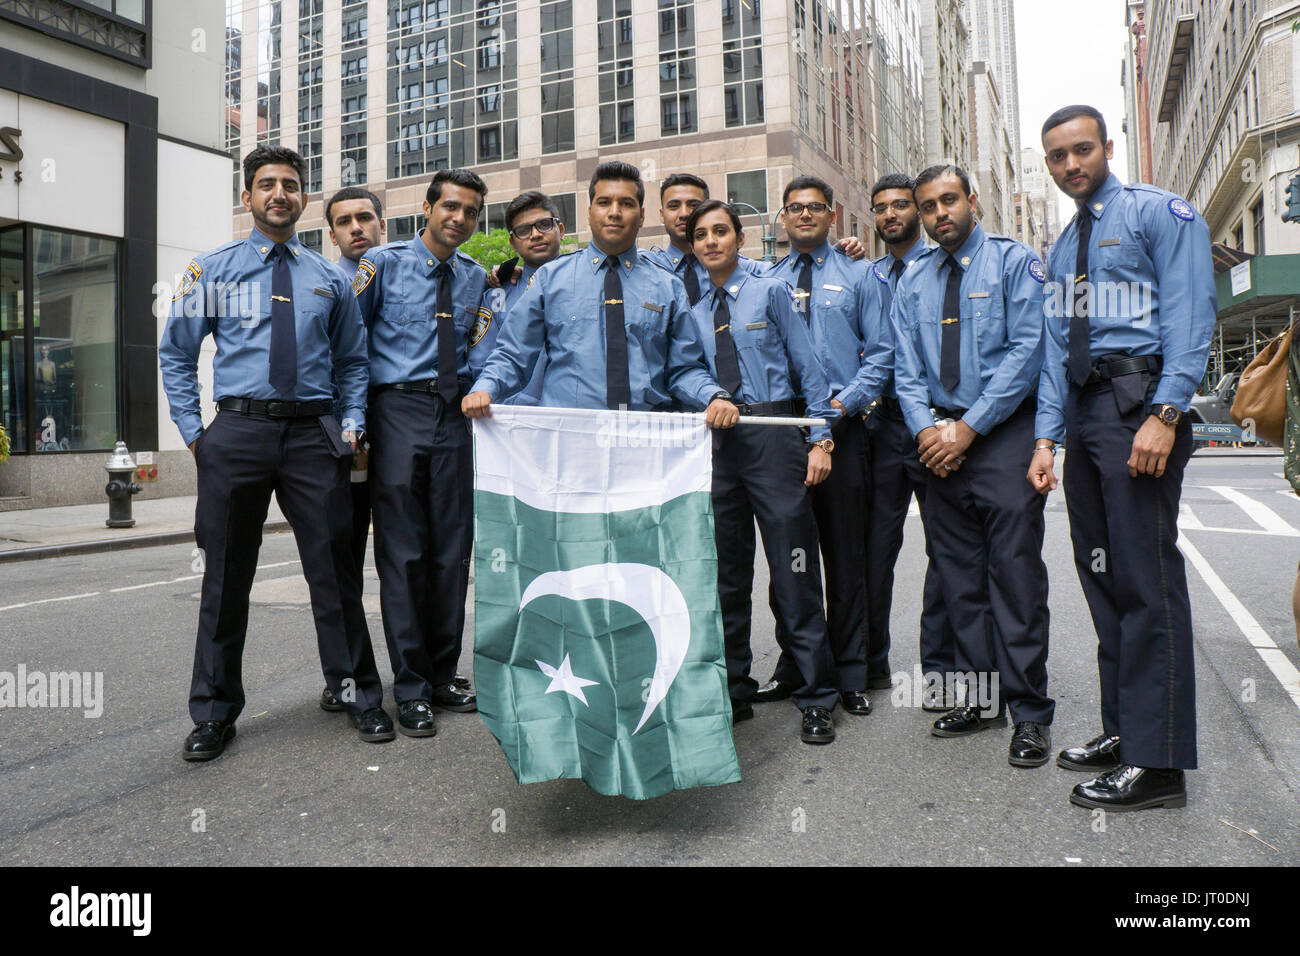 A group of young Pakistani students at the NYPD Police Academy at the Pakistan Day Parade in Manhattan, New York City. - Stock Image